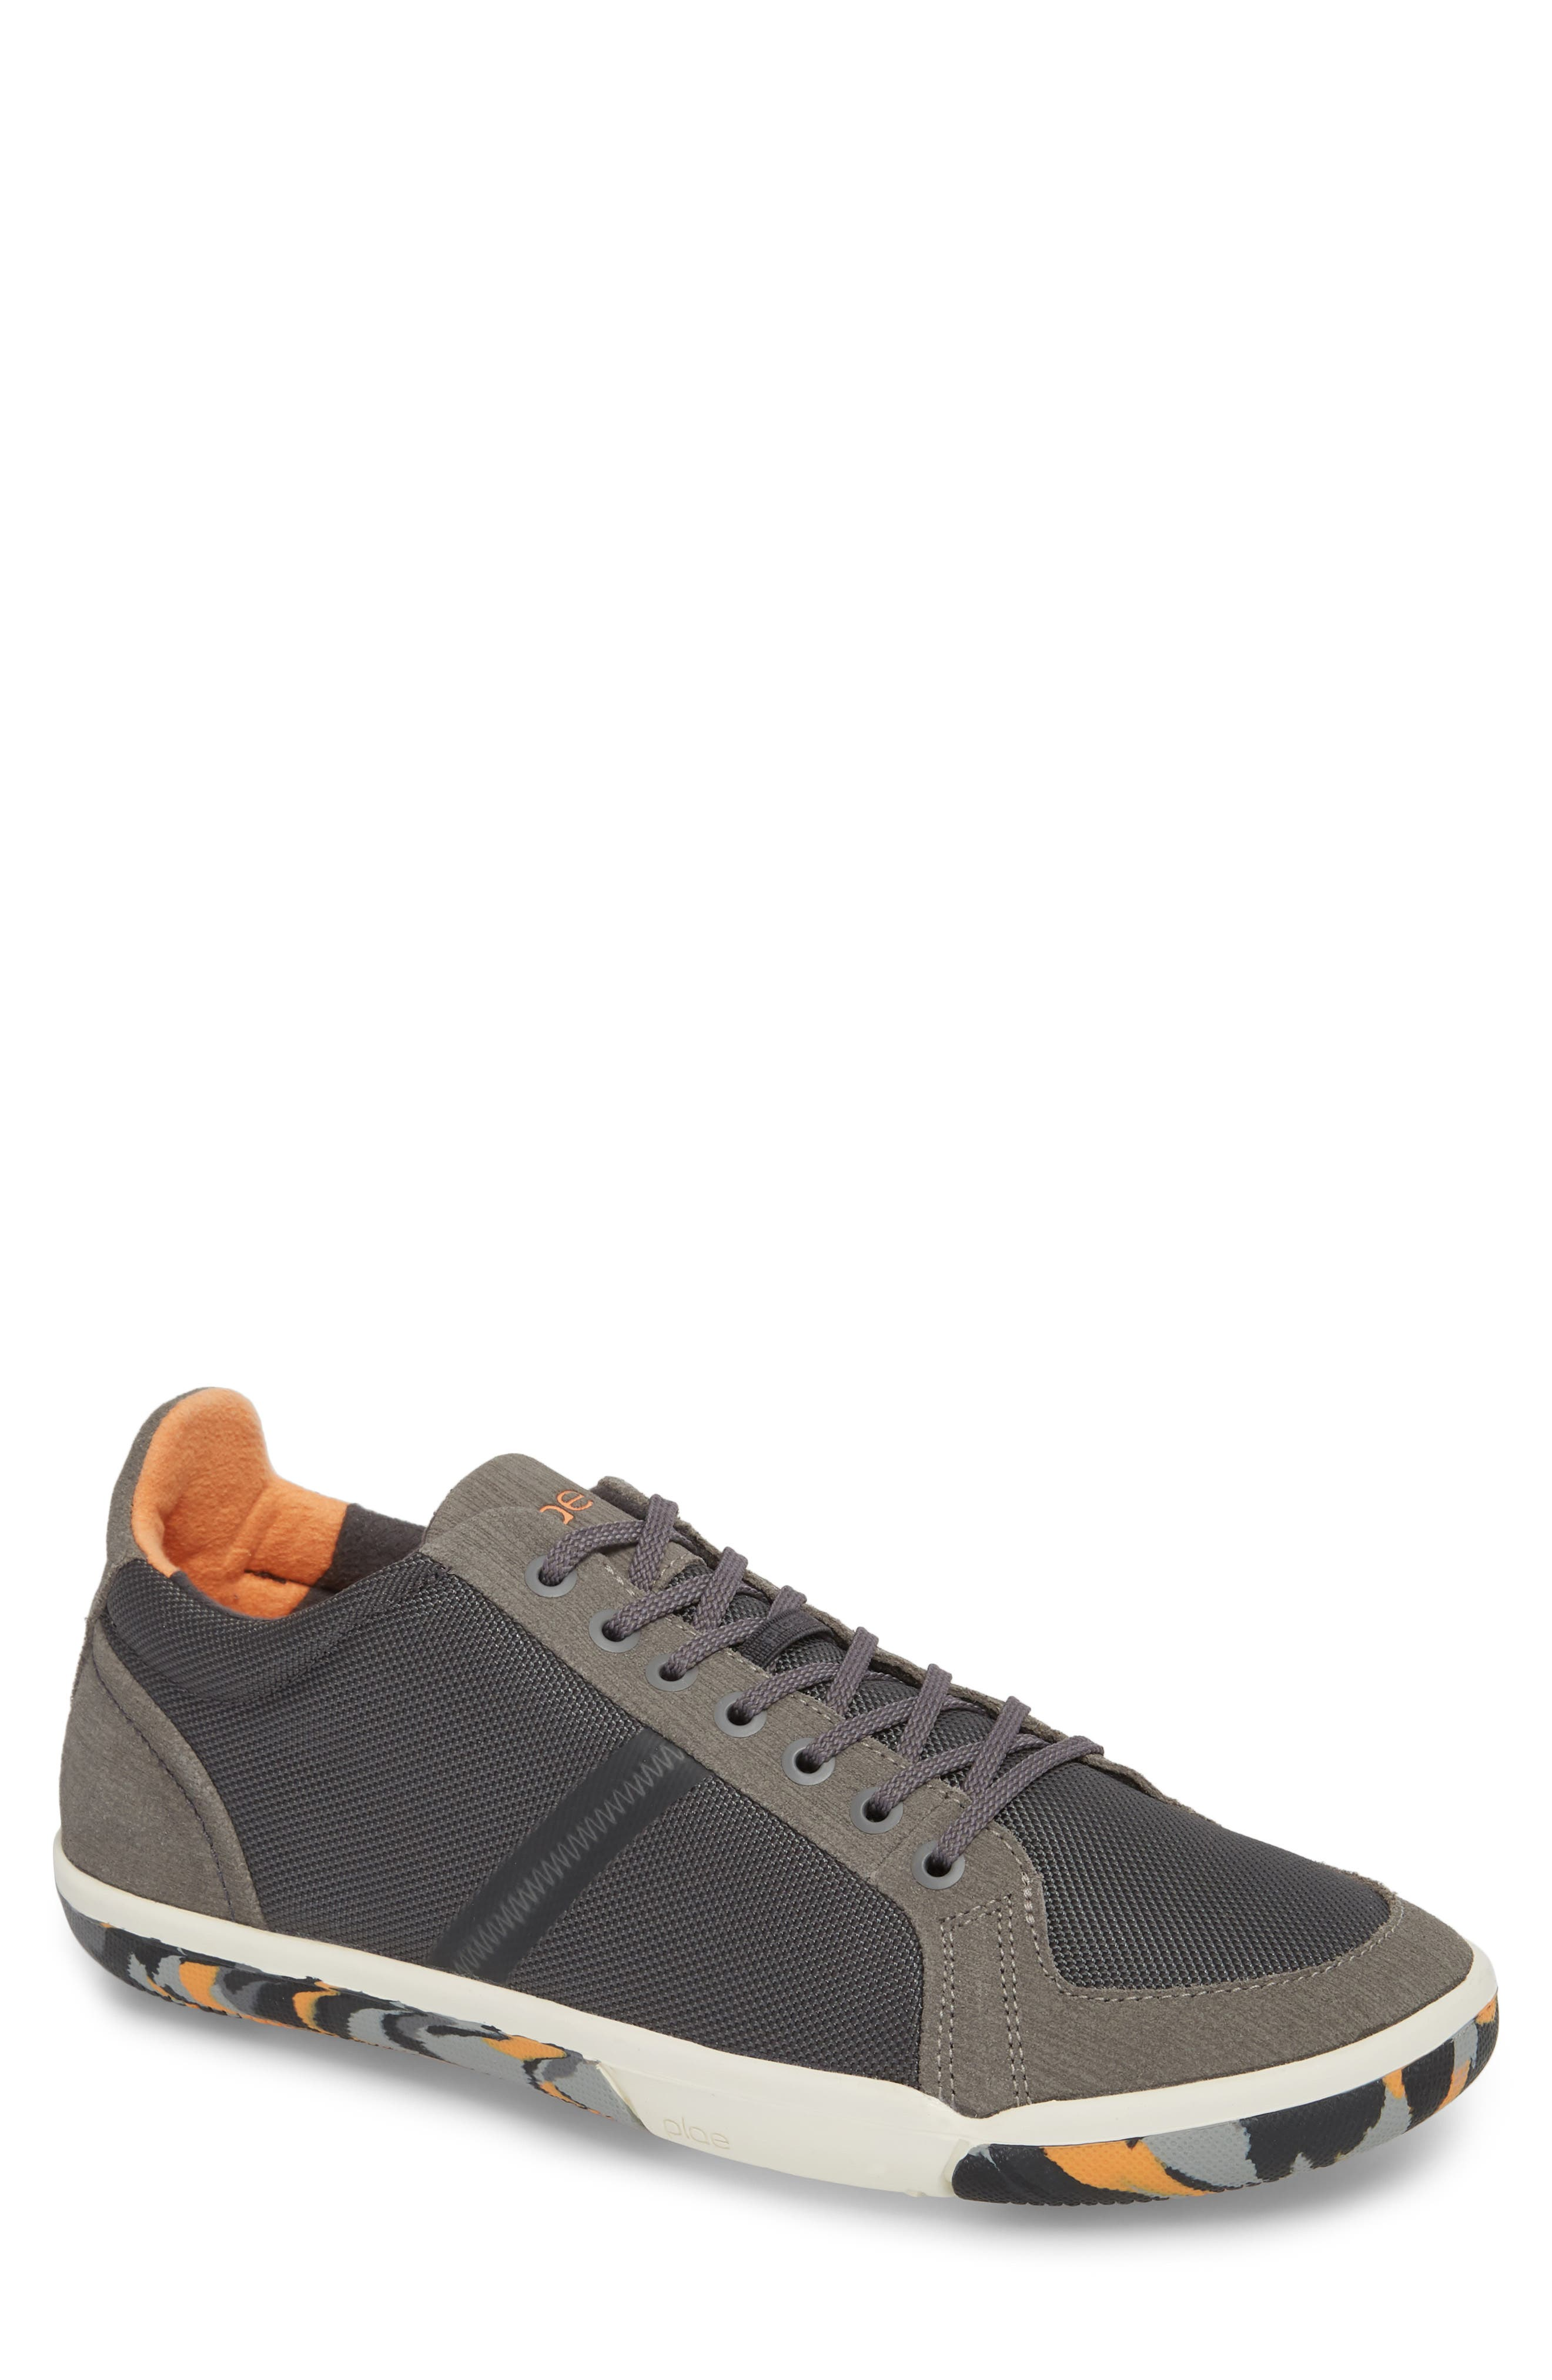 Prospect Low Top Sneaker,                             Main thumbnail 1, color,                             HYPERSPACE